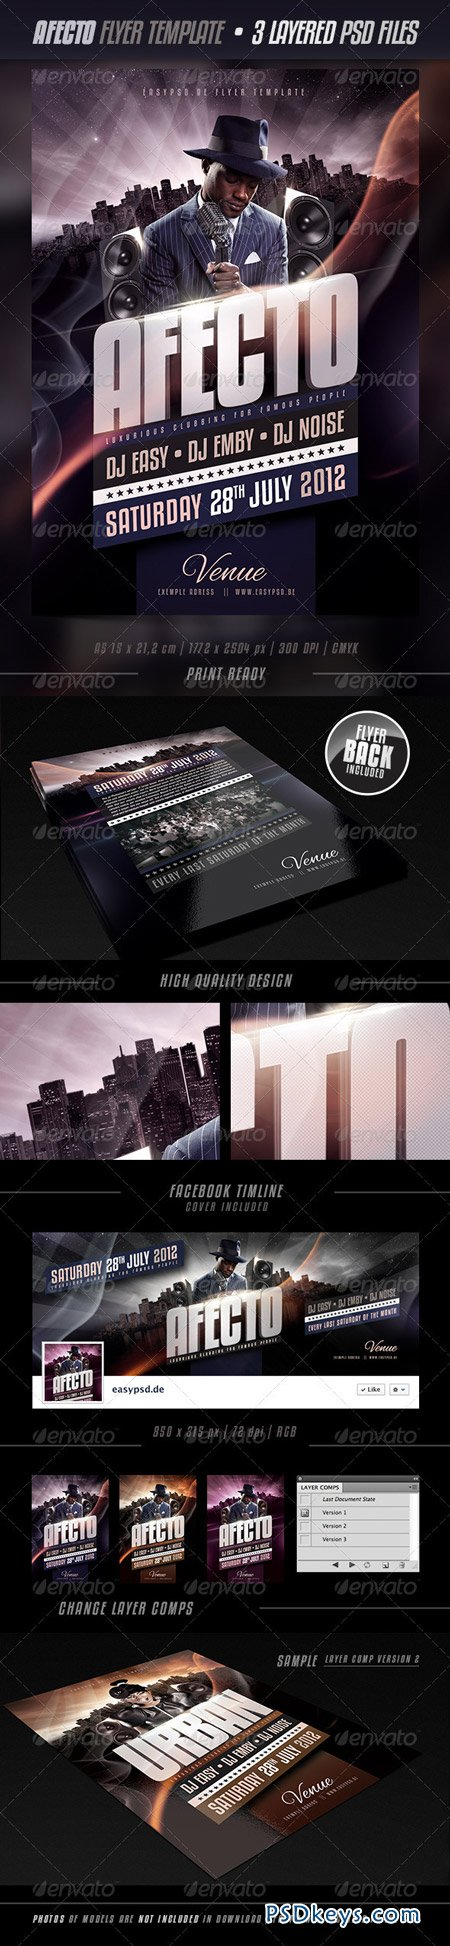 Afecto Flyer Template 2737369